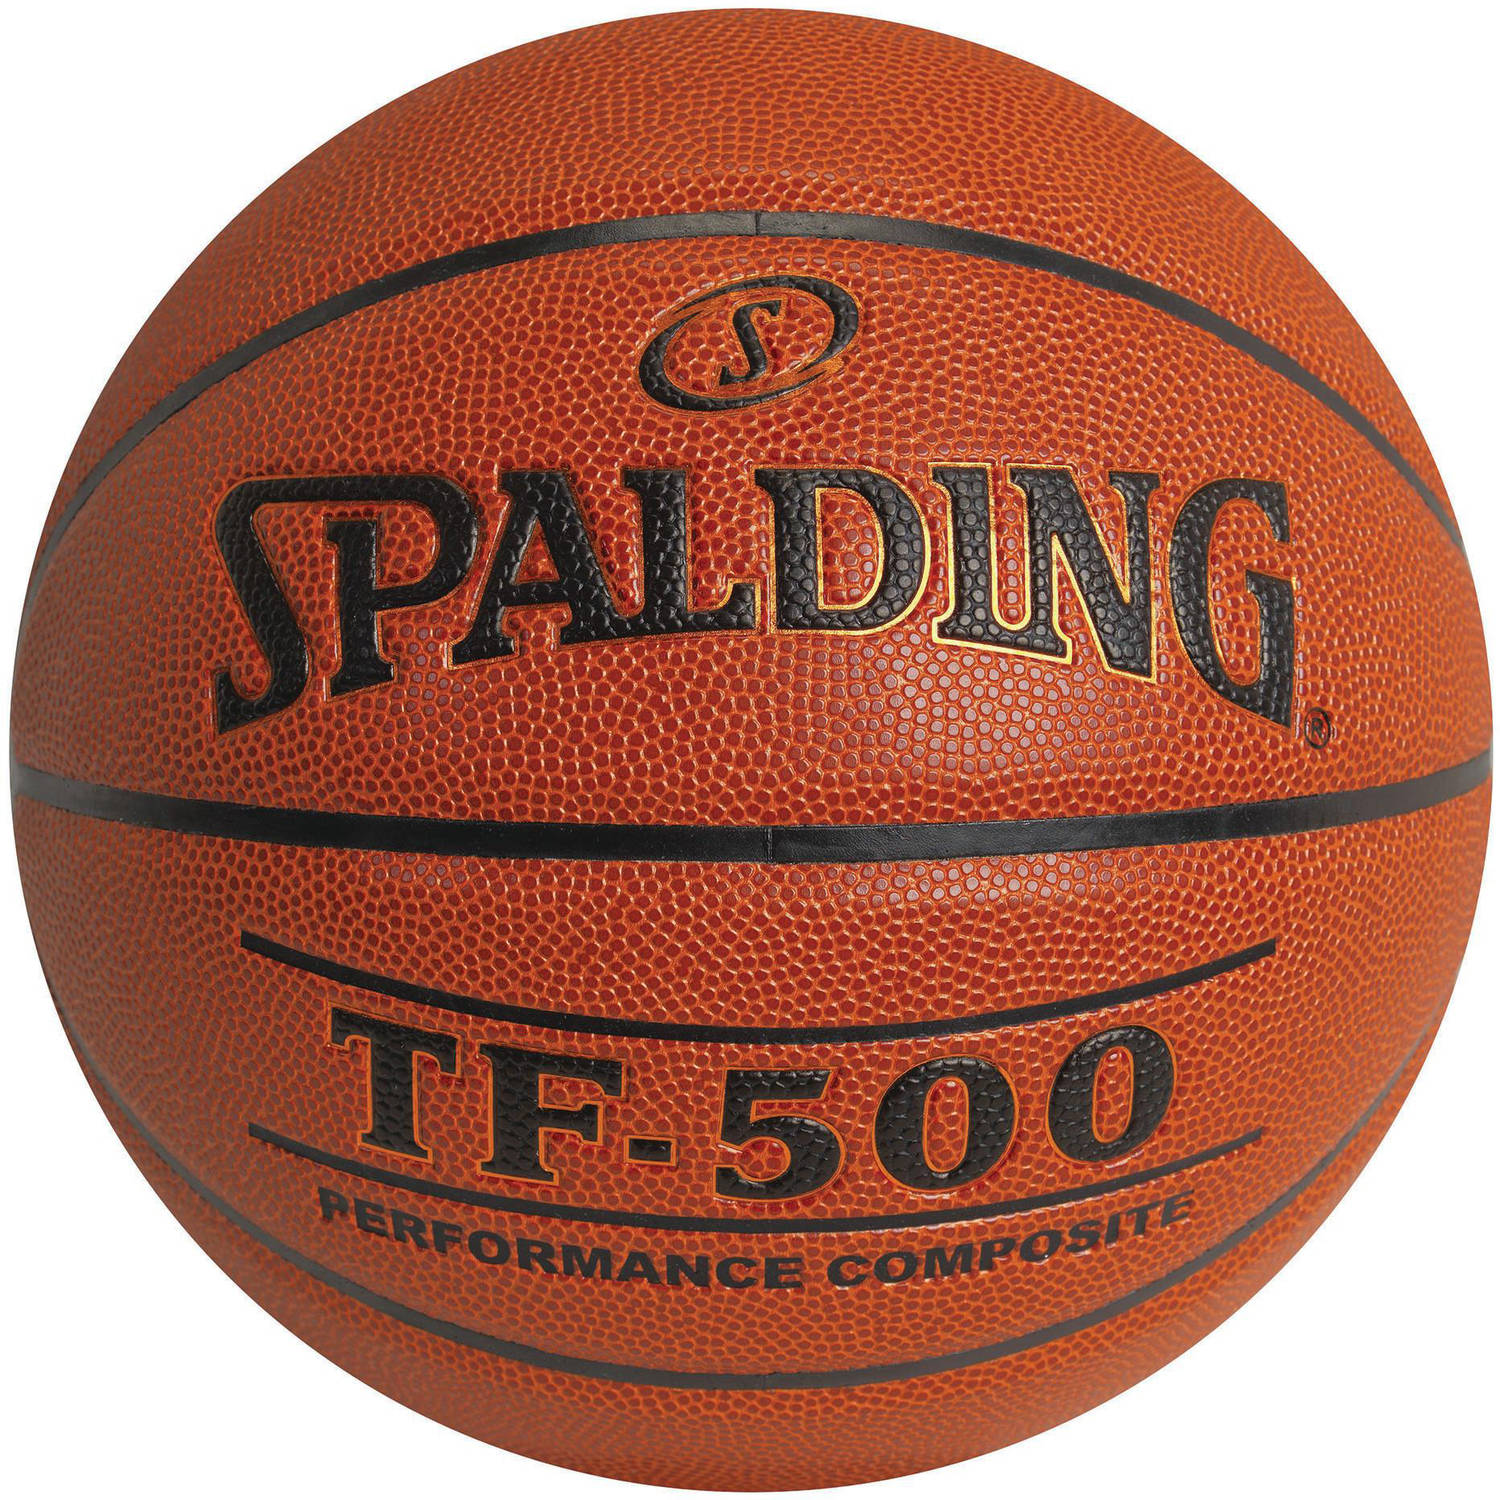 Spalding Tf-500 Indoor/Outdoor Composite Basketball, Youth 27.5